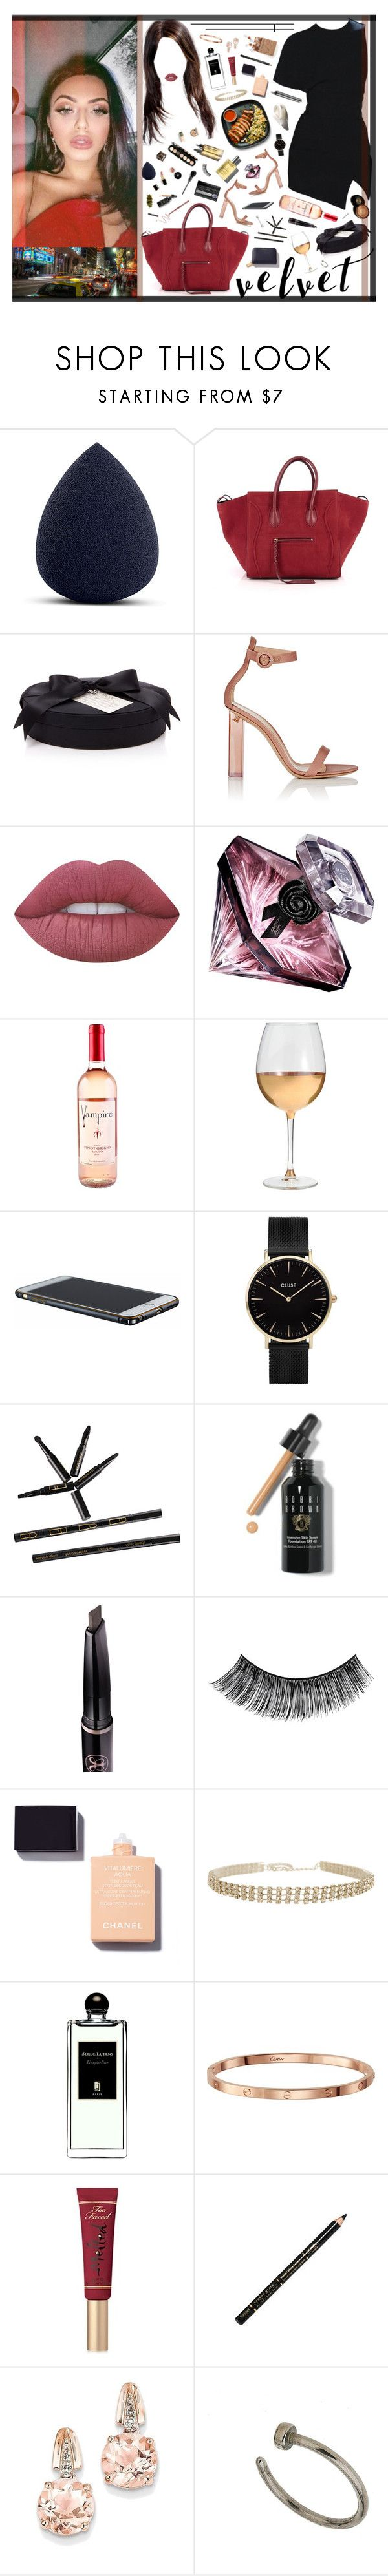 """7/16 Players Prayer 🙏"" by xomissvolker ❤ liked on Polyvore featuring My Makeup Brush Set, CÉLINE, D.L. & Co., Gianvito Rossi, Lime Crime, Lancôme, Marc Blackwell, CLUSE, Bobbi Brown Cosmetics and Garance Doré"